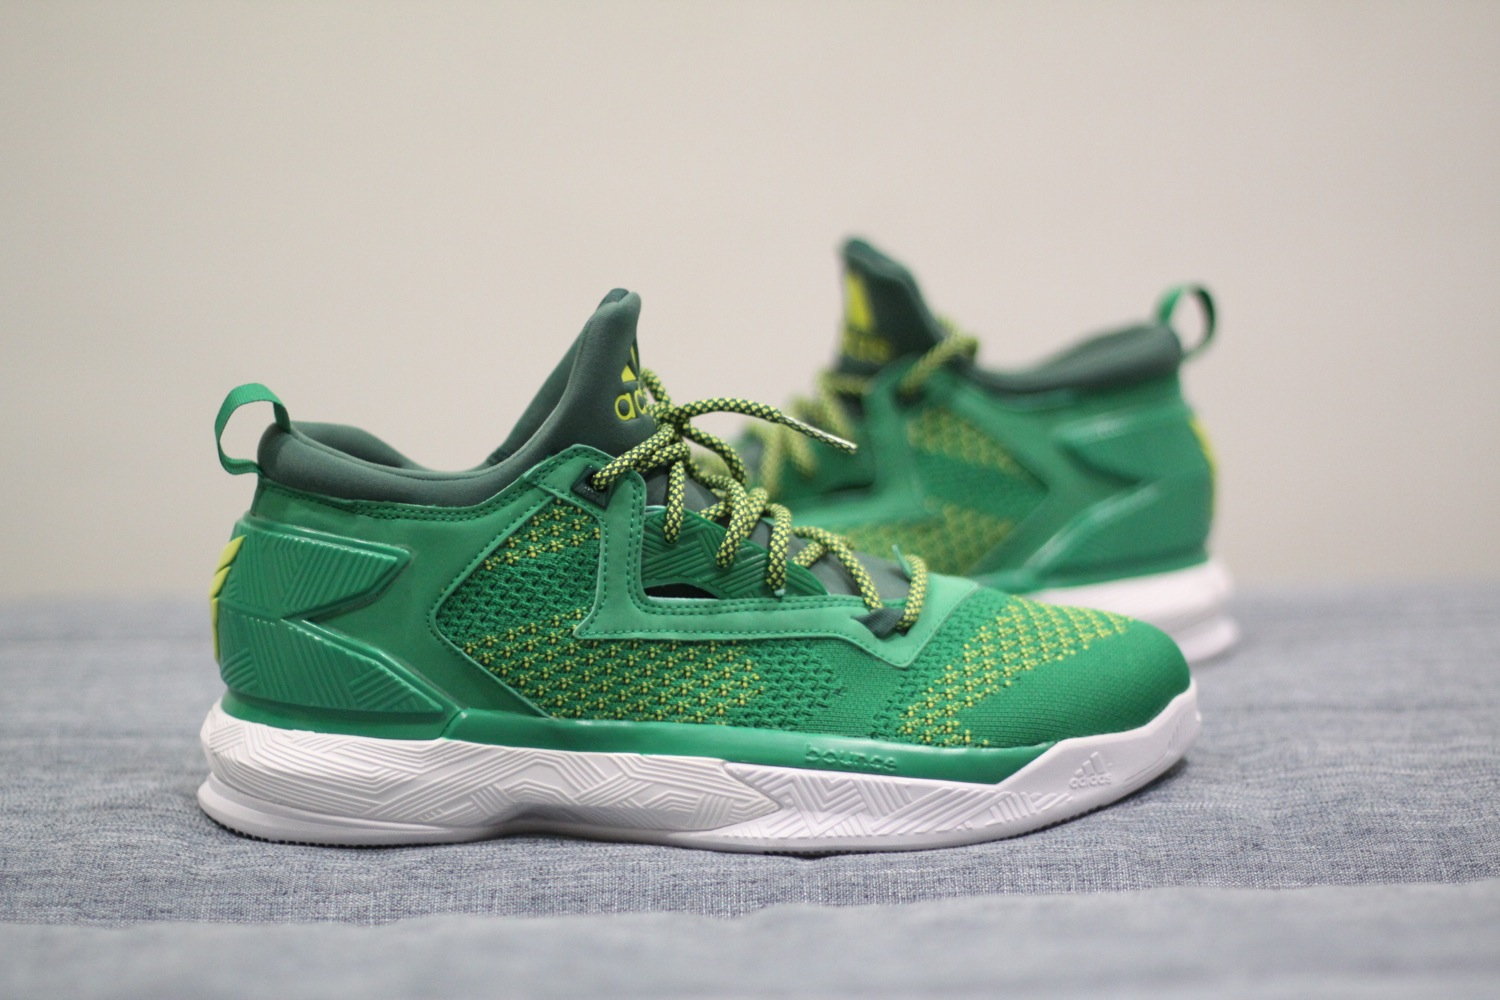 separation shoes a6413 1275d adidas Lillard 2 Primeknit Performance Review